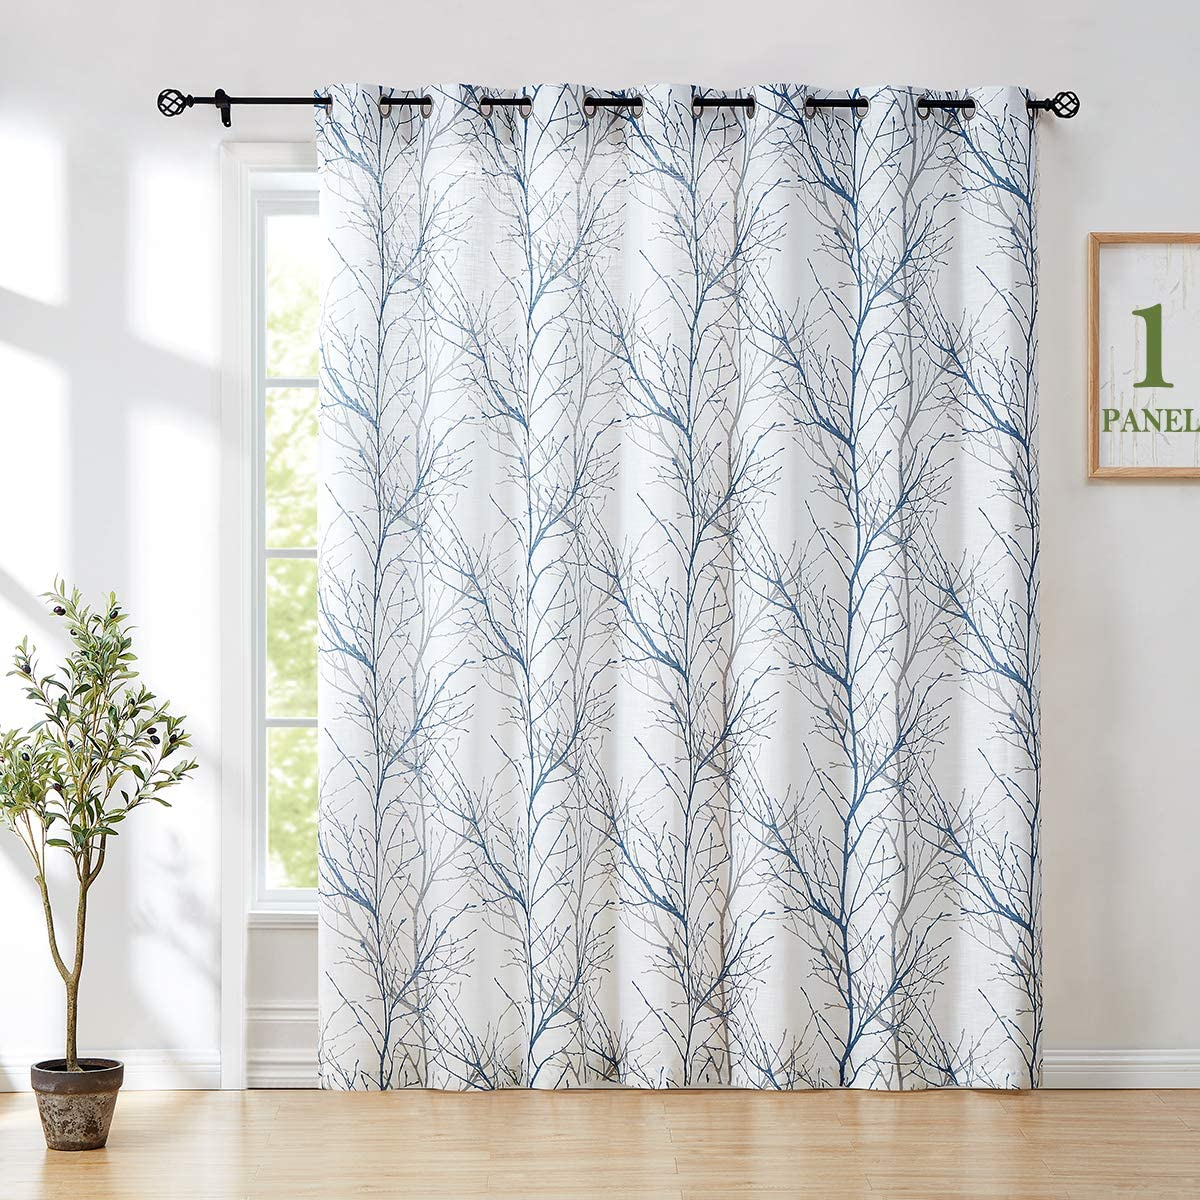 Amazon Com Fmfunctex White Blue Sliding Door Curtain 96 Inches Tree Branch Semi Sheer Patio Glass Door Panel For Large Windows Living Room Linen Texture Curtain Drapes For Privacy 100 W 8ft 1panel Home